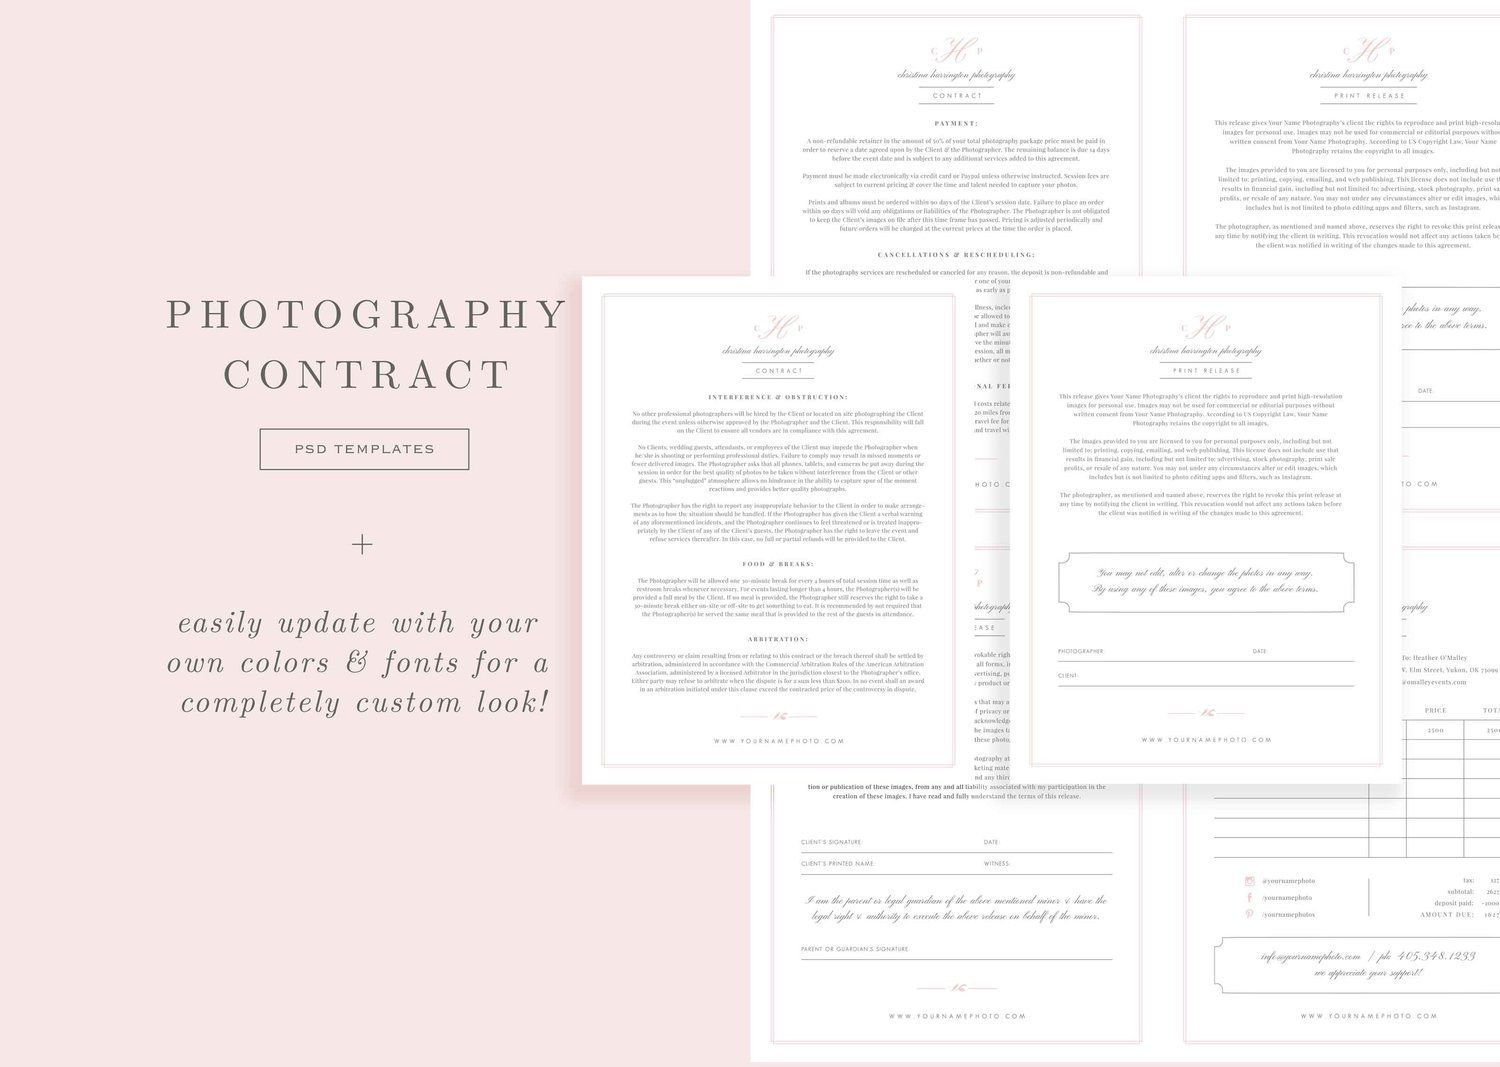 009 Singular Wedding Photographer Contract Template Free Highest Clarity  Simple Photography WordFull